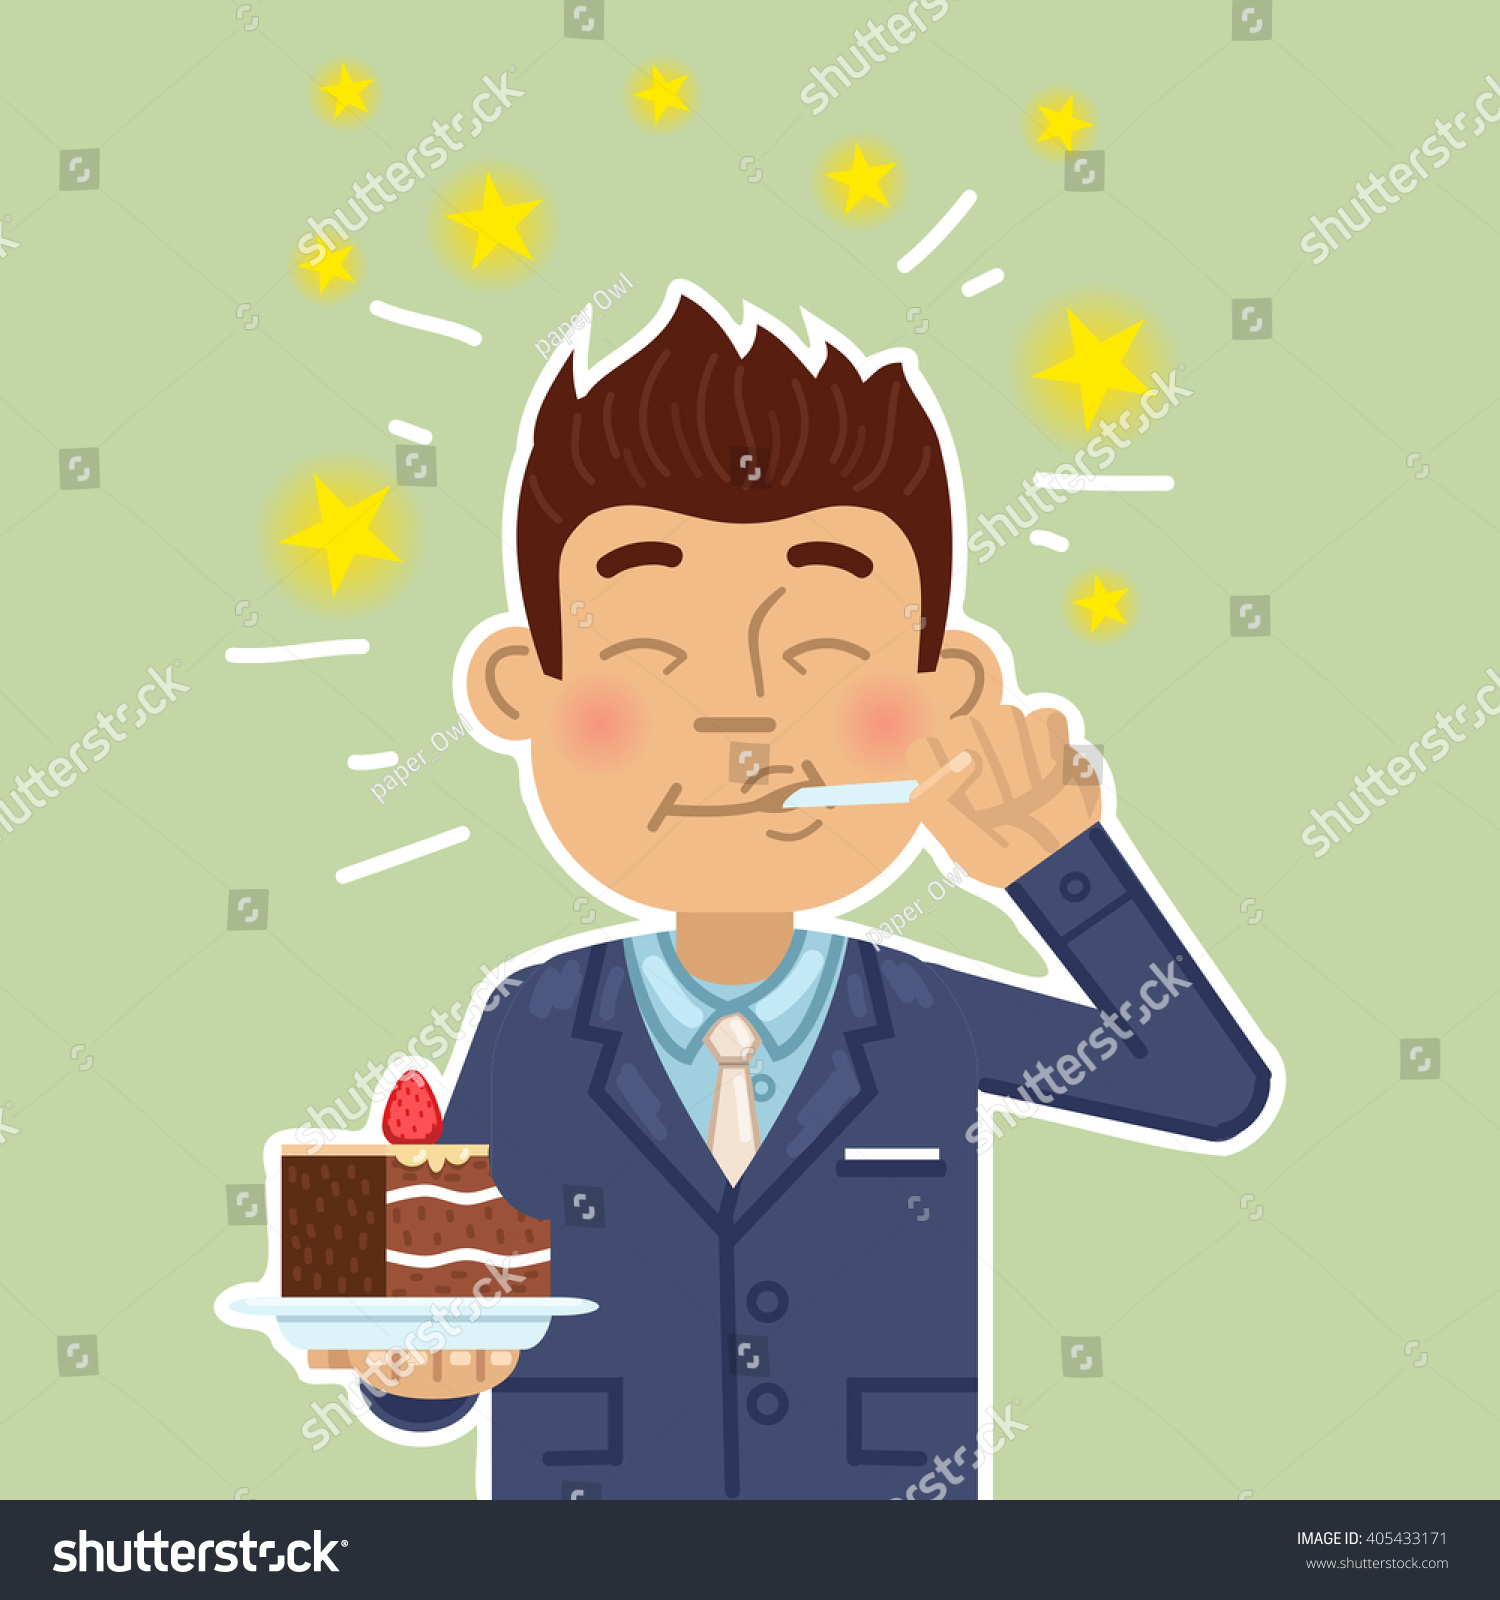 Illustration Businessman Eating Cake Joyful Man Stock